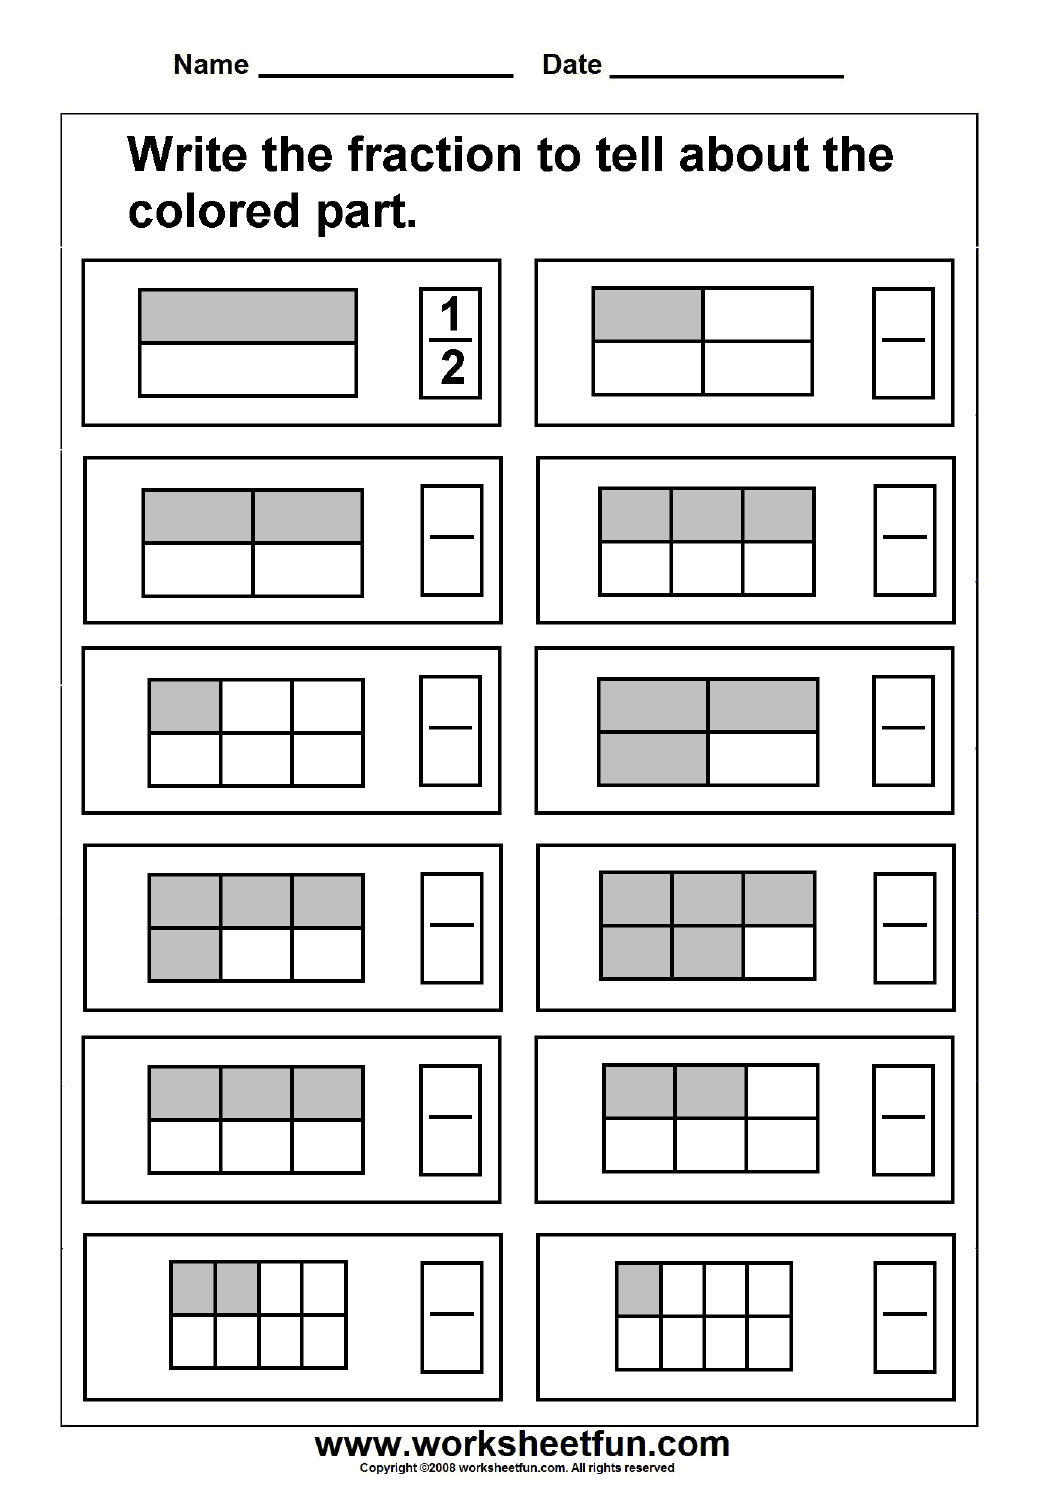 worksheet Fraction Sheet fraction model free printable worksheets worksheetfun 3 worksheets